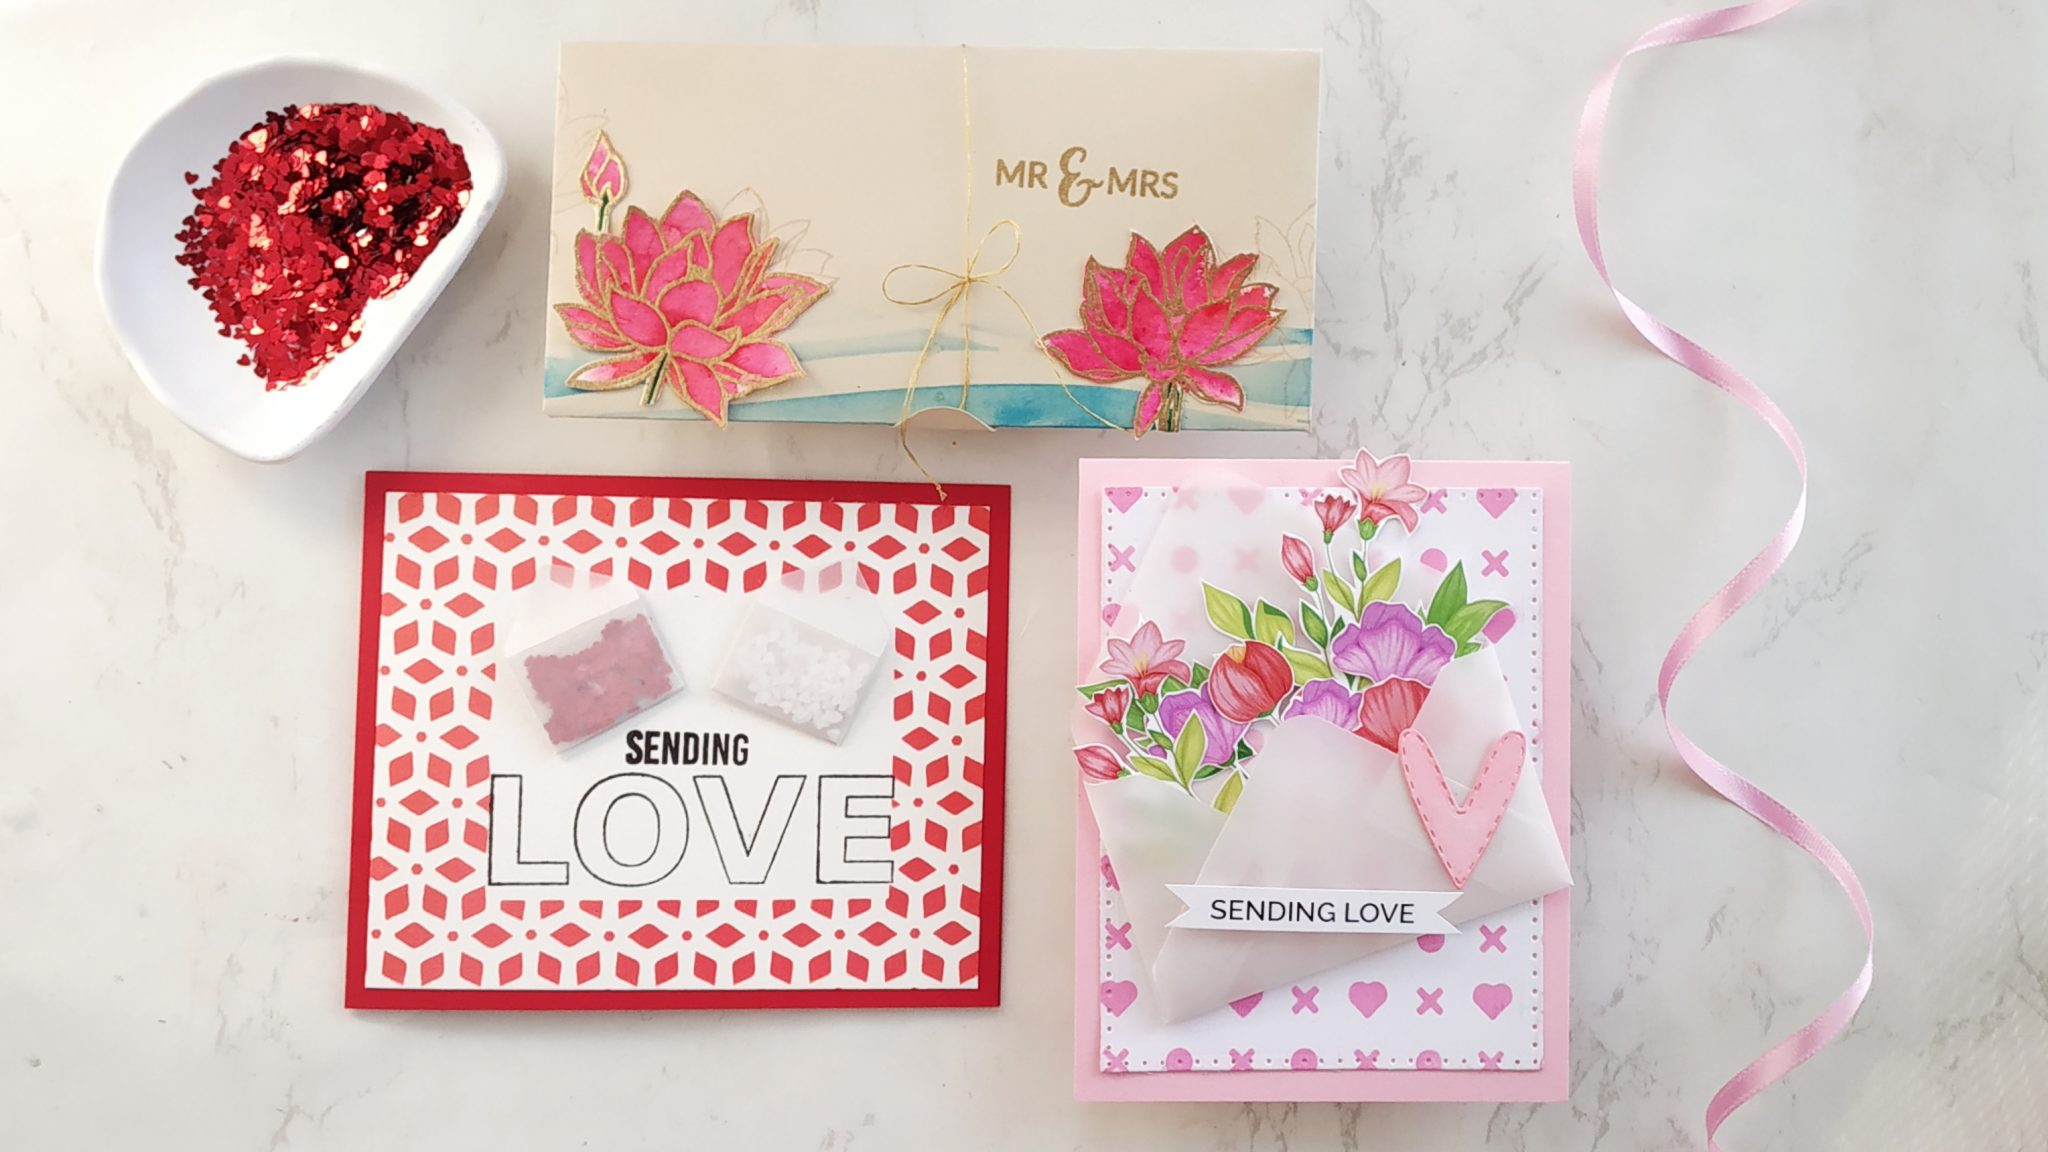 DIY envelopes - Send love in unique envelopes Video tutorial 6